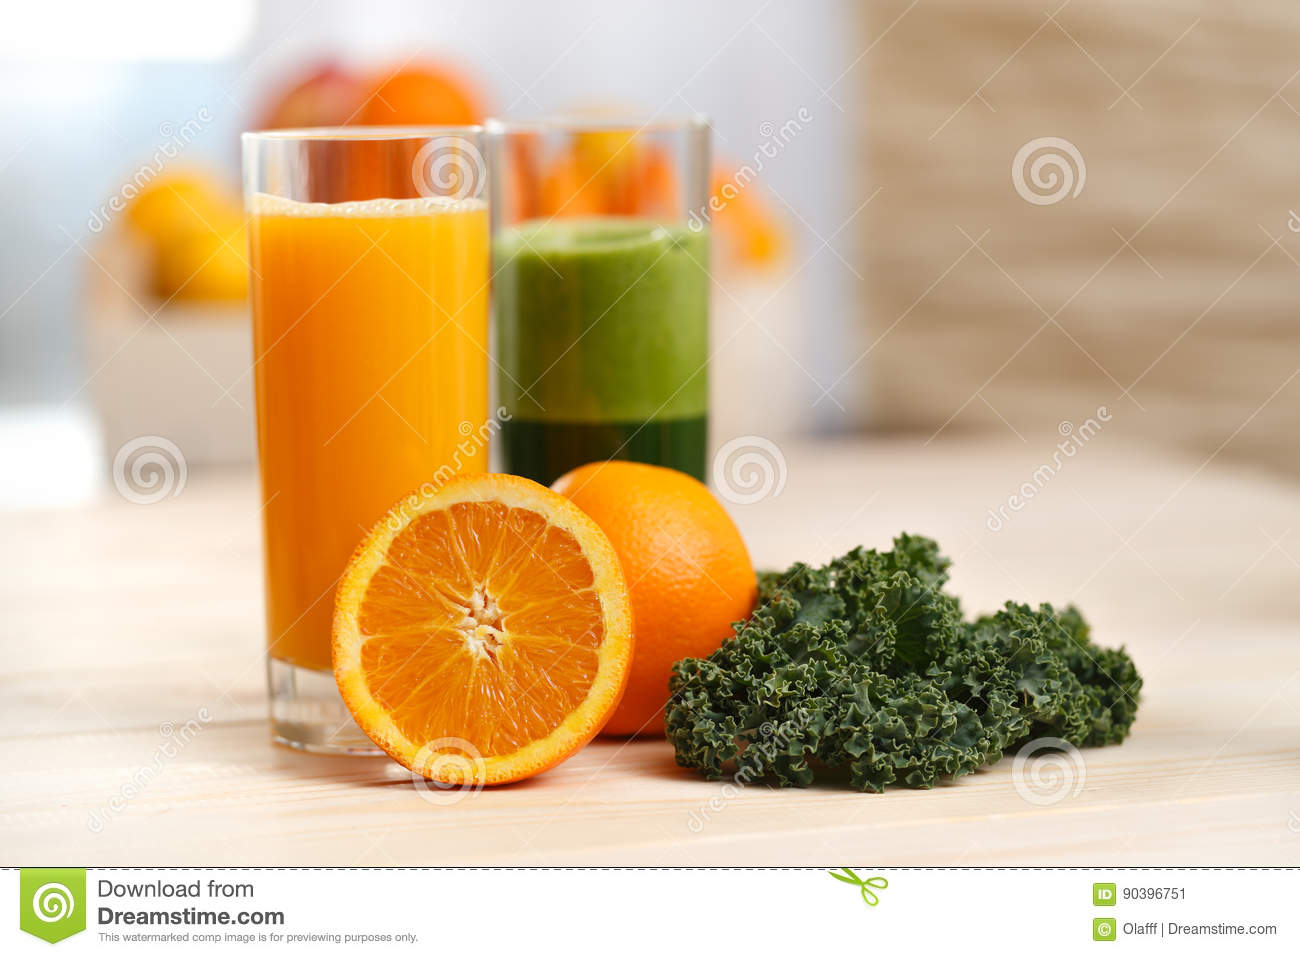 Orange Juice And Green Veggies For Better Memory In Old Age Health News in Hindi photo